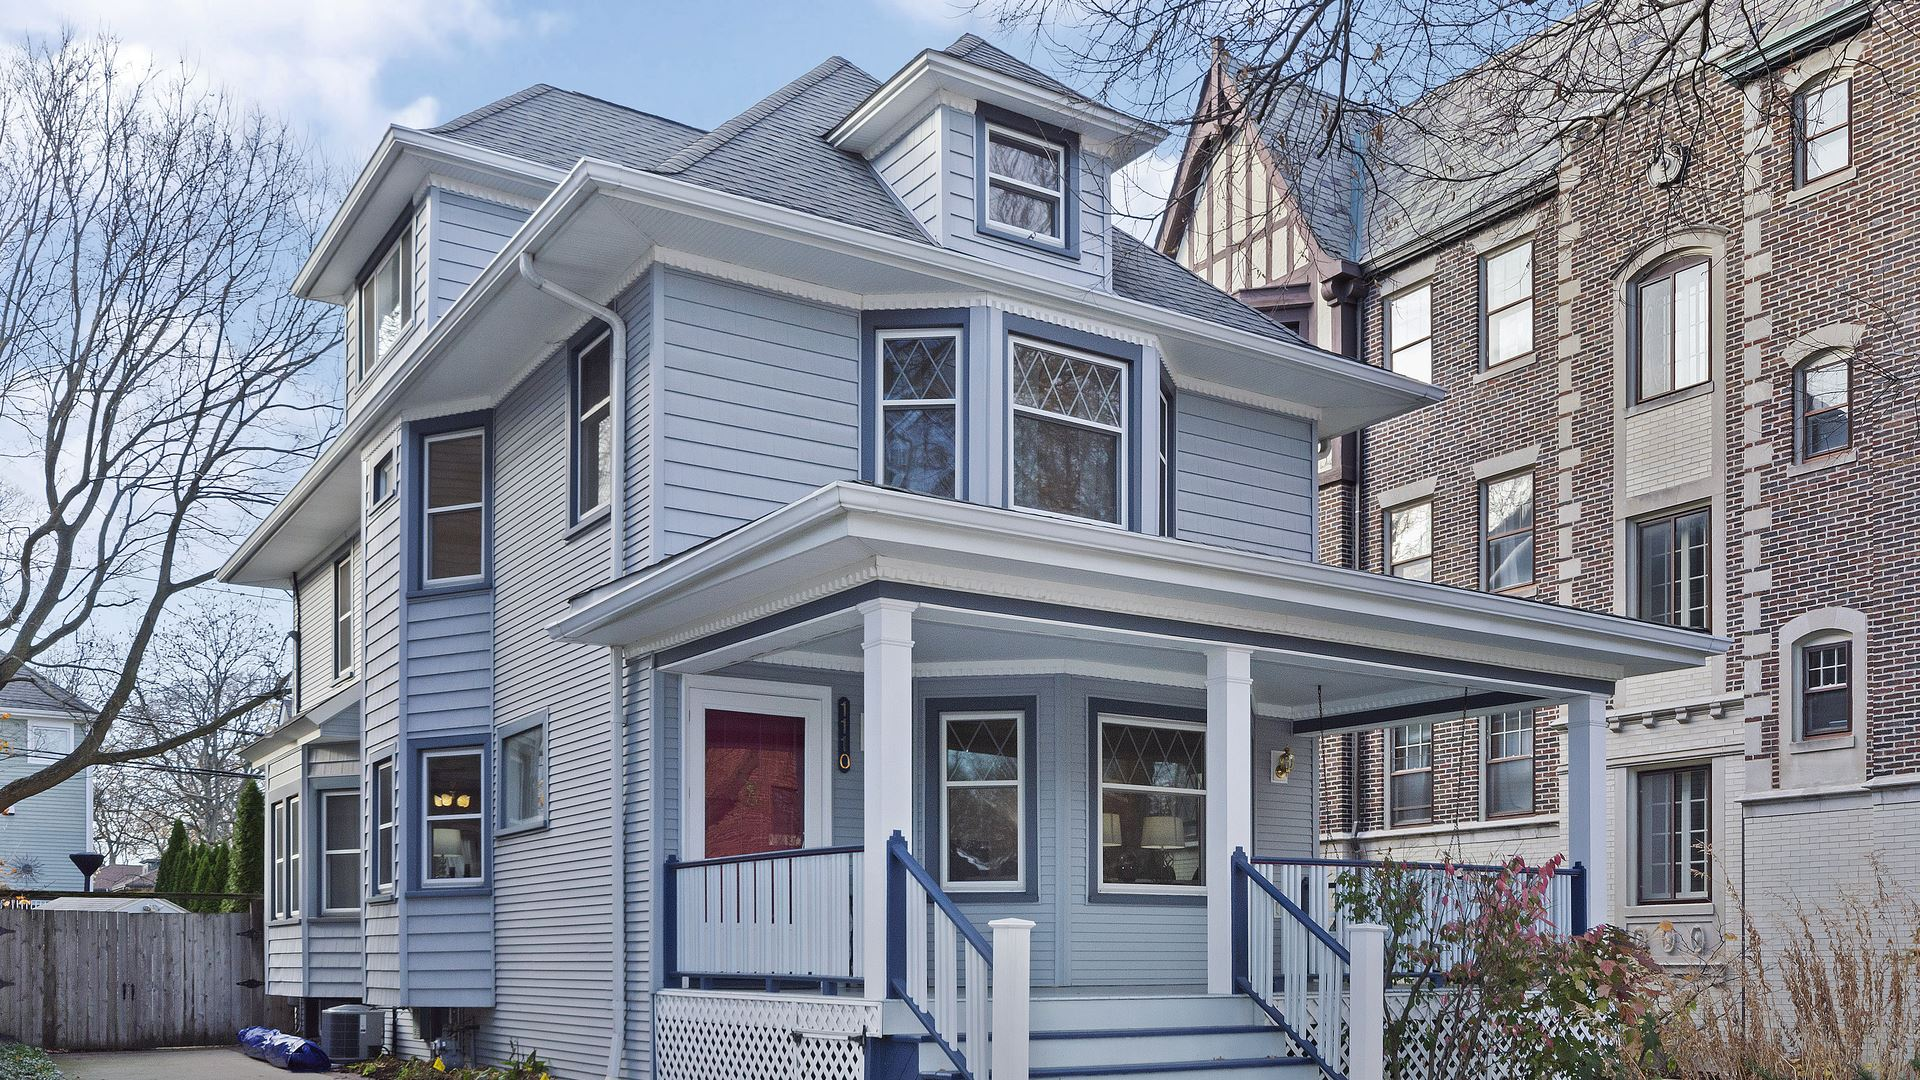 Photo for 1110 Maple Avenue, Evanston, IL 60202 (MLS # 10936237)